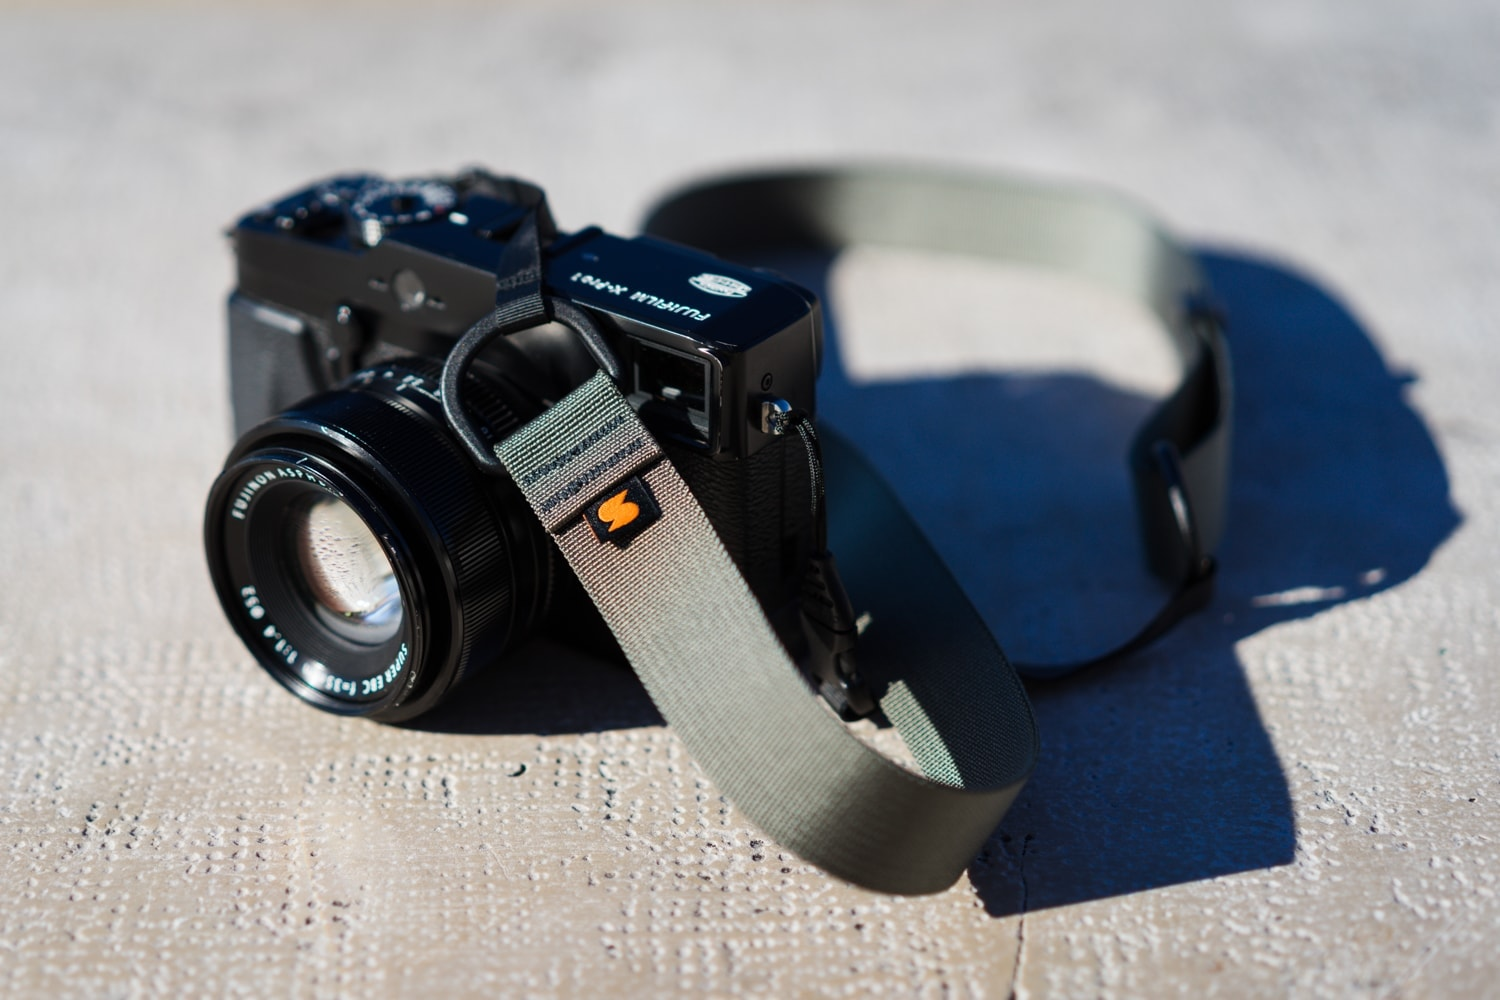 Simplr M1a Mirrorless Camera Strap Review at fujixpassion.com